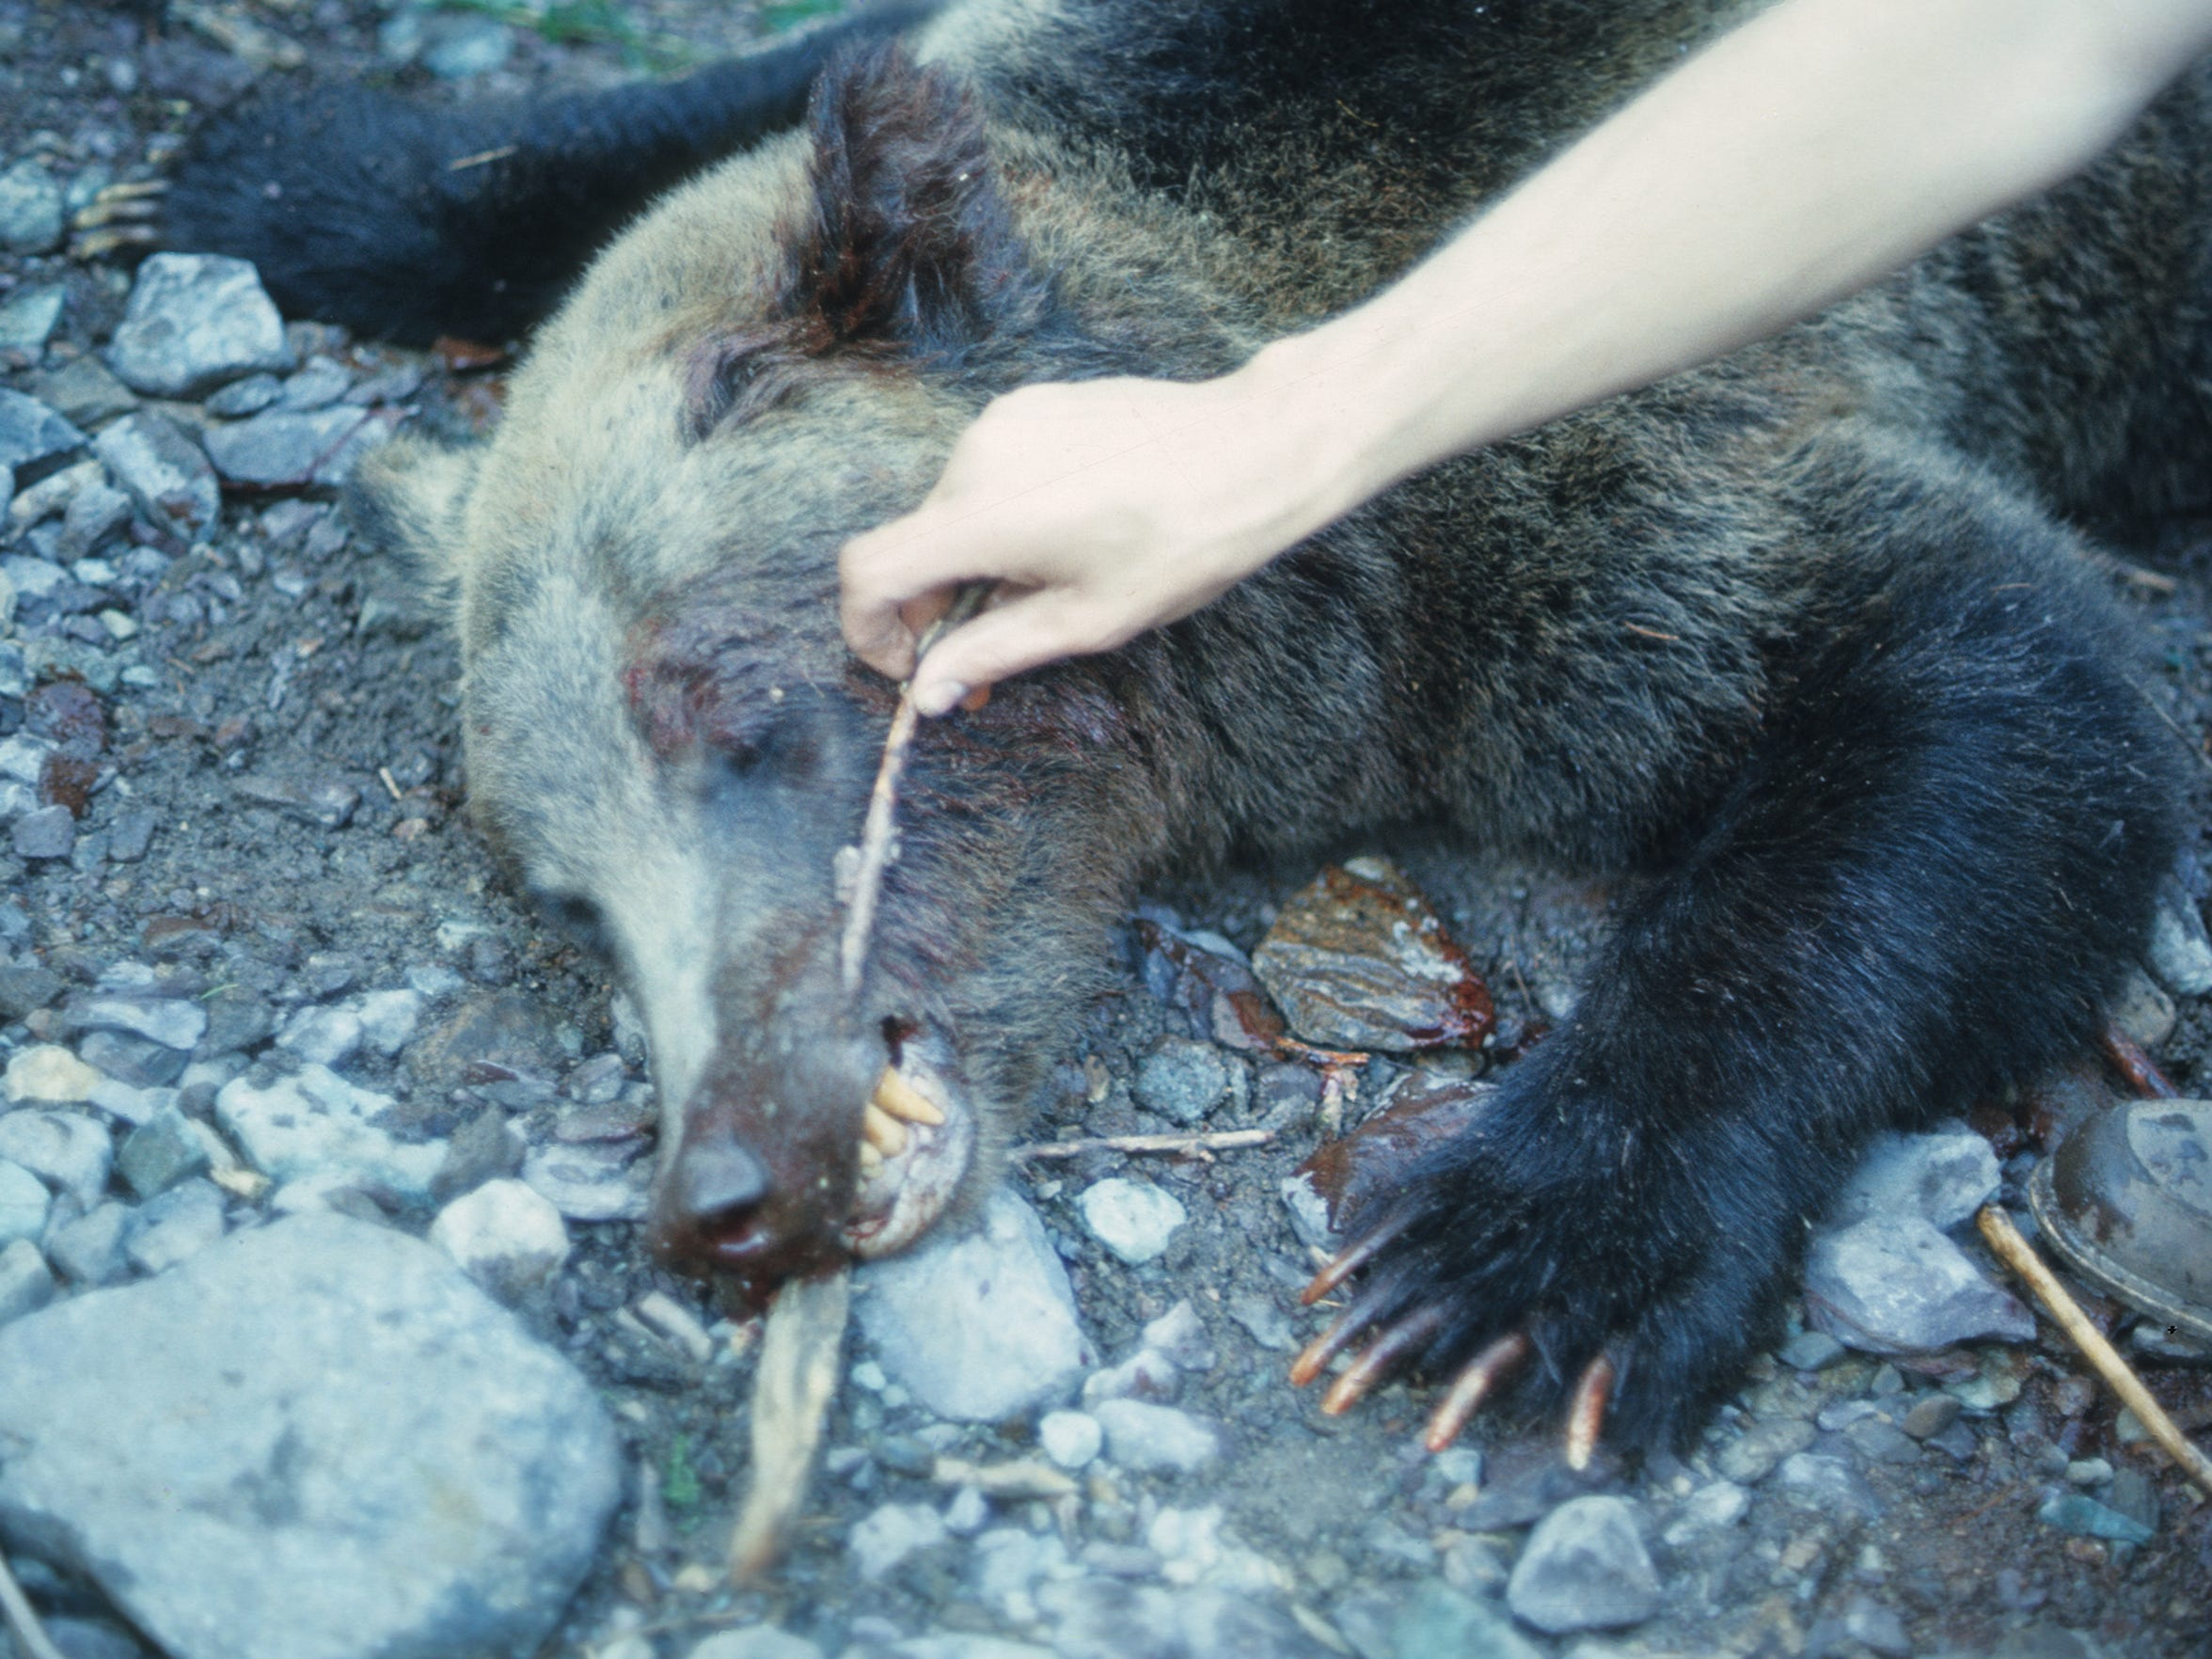 Shards of glass were found embedded in the sow's gums.